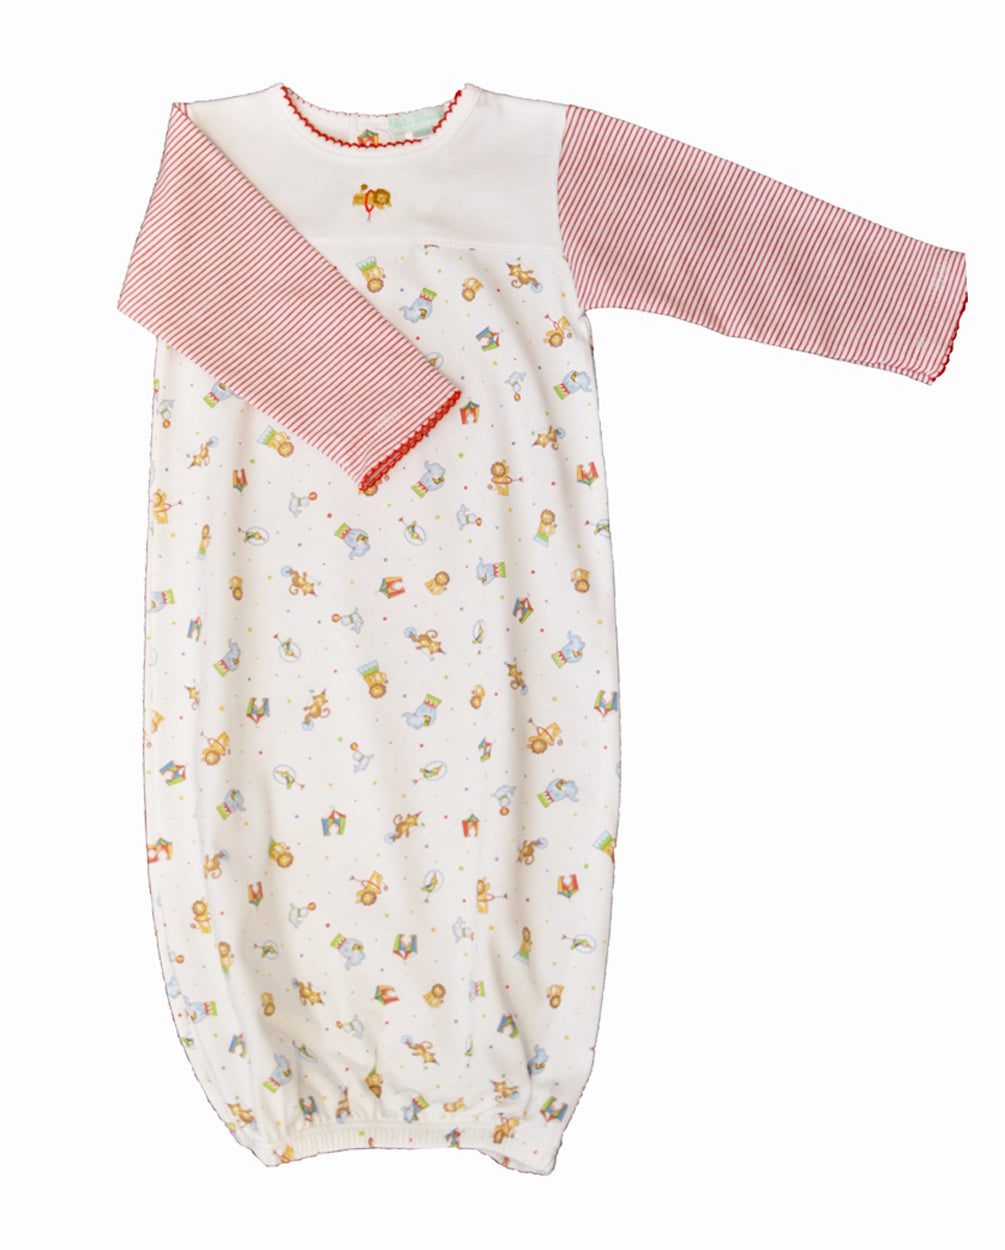 Circus baby boy day gown - Little Threads Inc. Children's Clothing